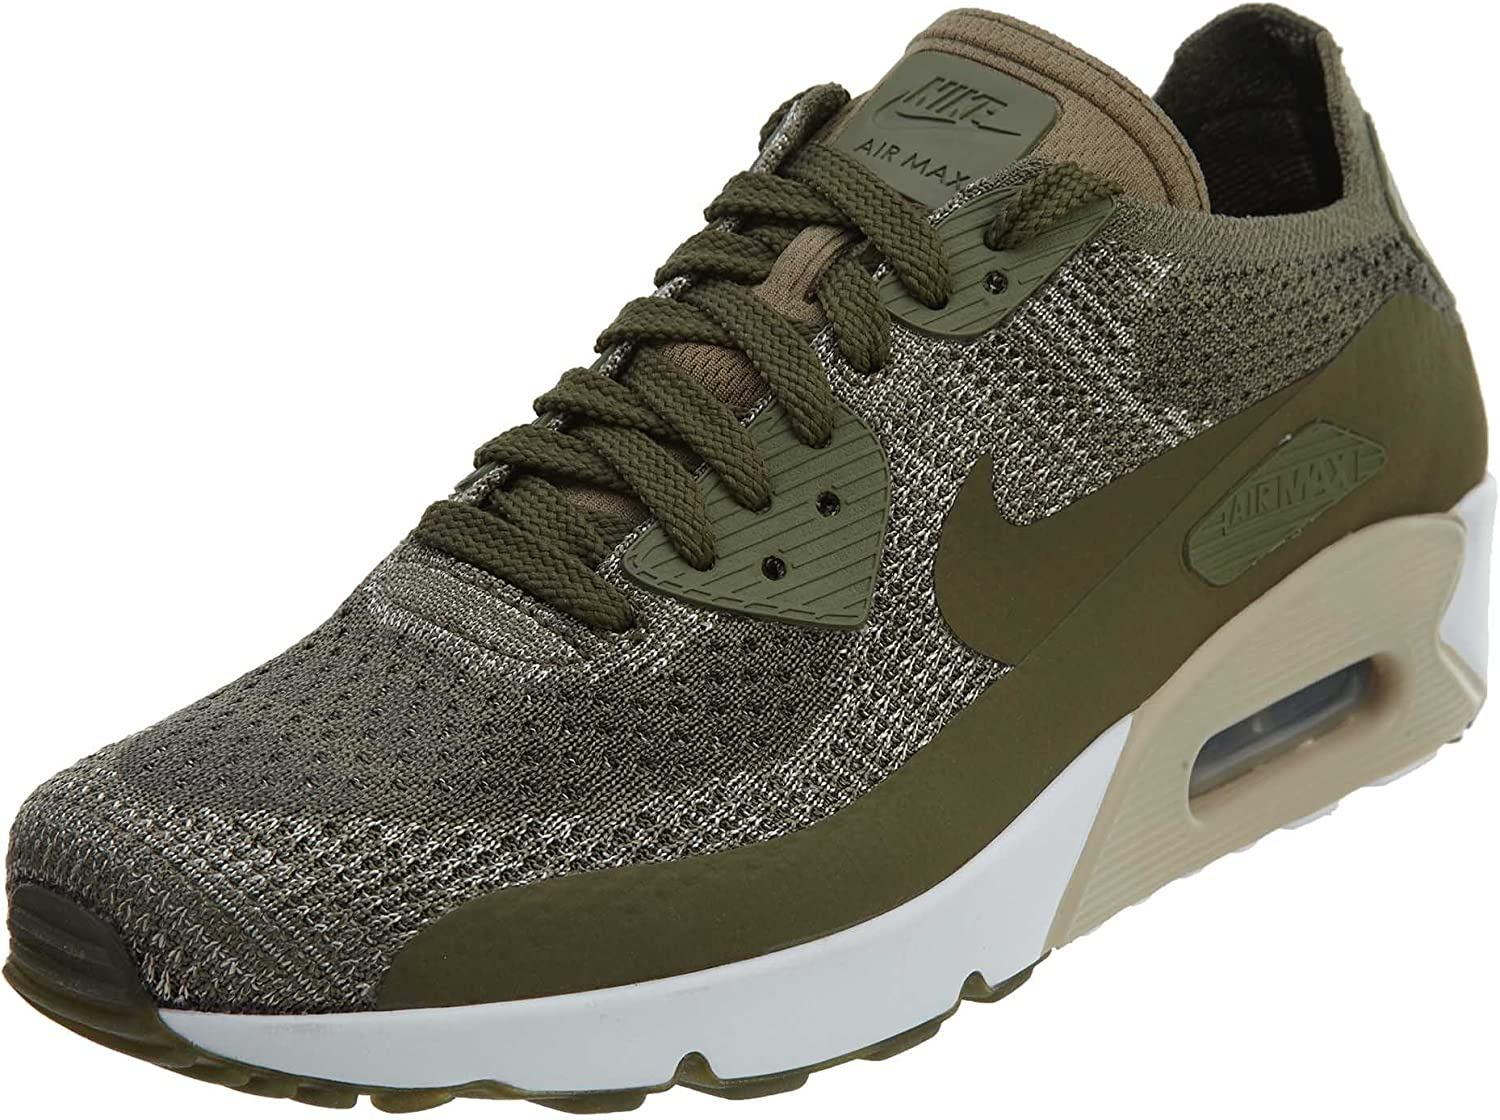 preocupación plan de ventas Inclinado  Amazon.com | Nike Mens Air Max 90 Ultra 2.0 Flyknit, Medium Olive, 9 D(M)  US | Fashion Sneakers